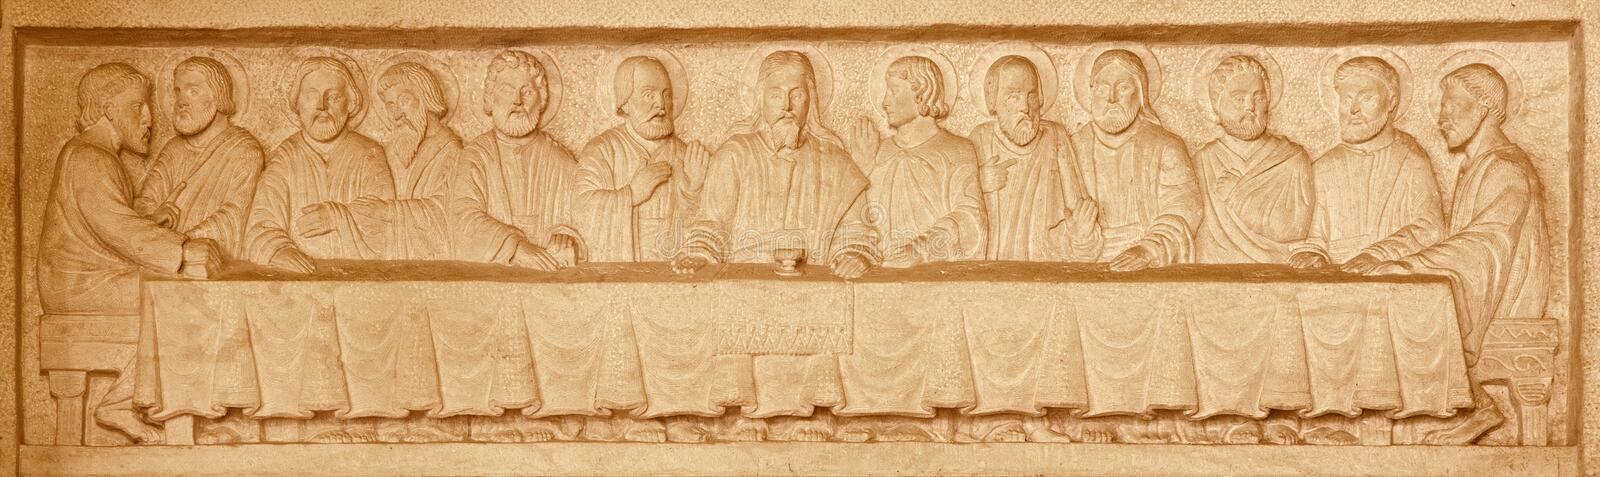 Jerusalem - The Last supper stone relief in Evangelical Lutheran Church of Ascension. JERUSALEM, ISRAEL - MARCH 3, 2015: The Last supper stone relief in royalty free stock photo